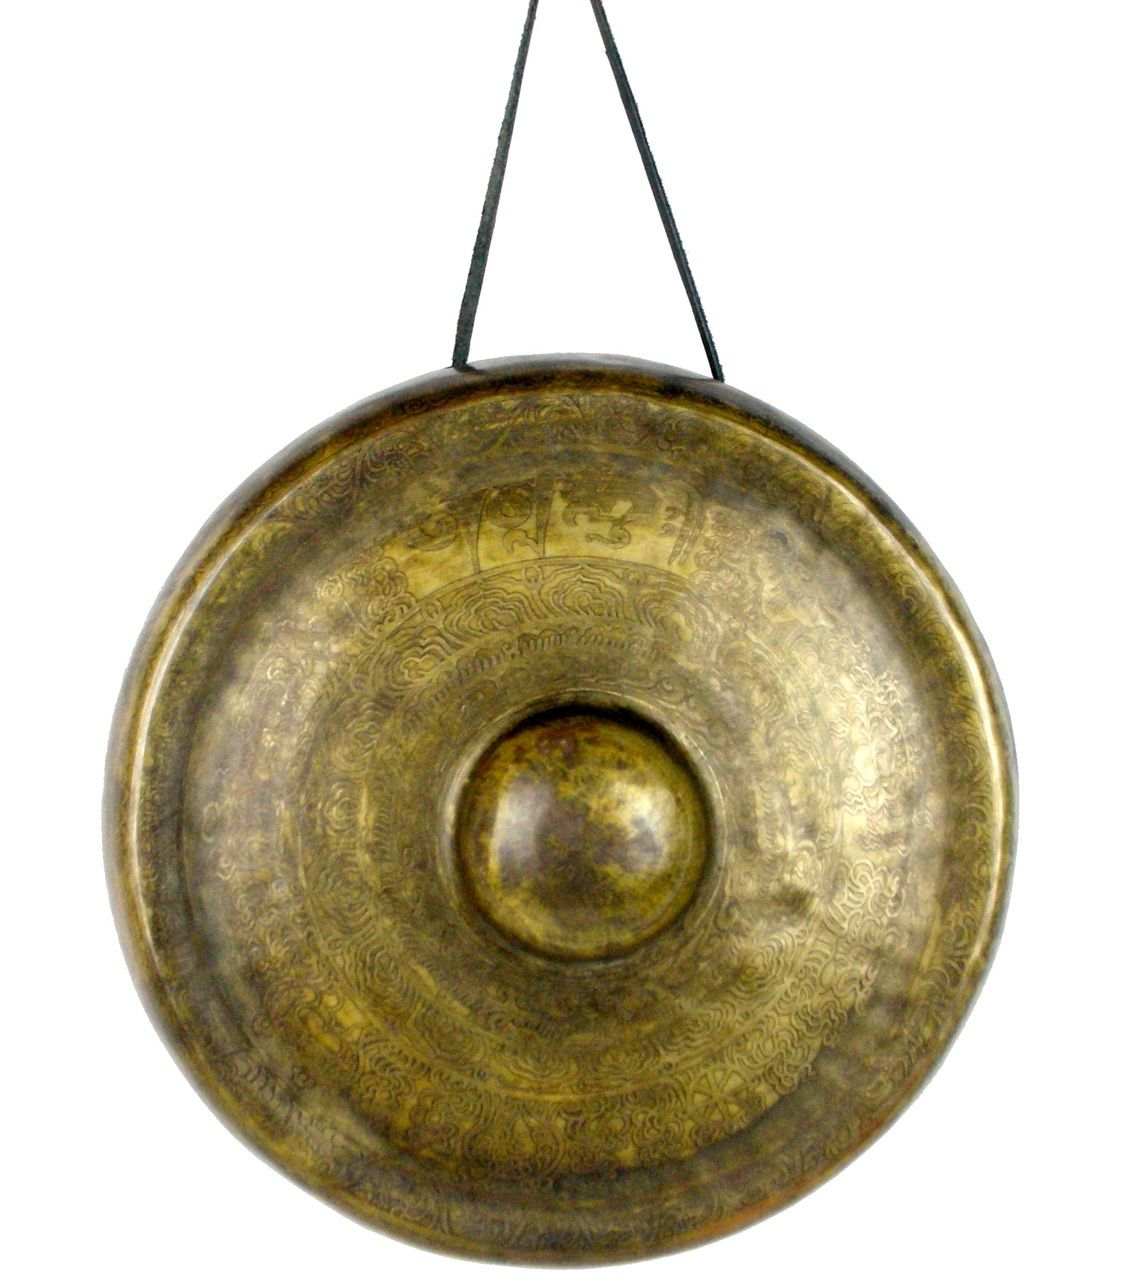 ANTIQUE-FINISH FIVE-METAL GONG